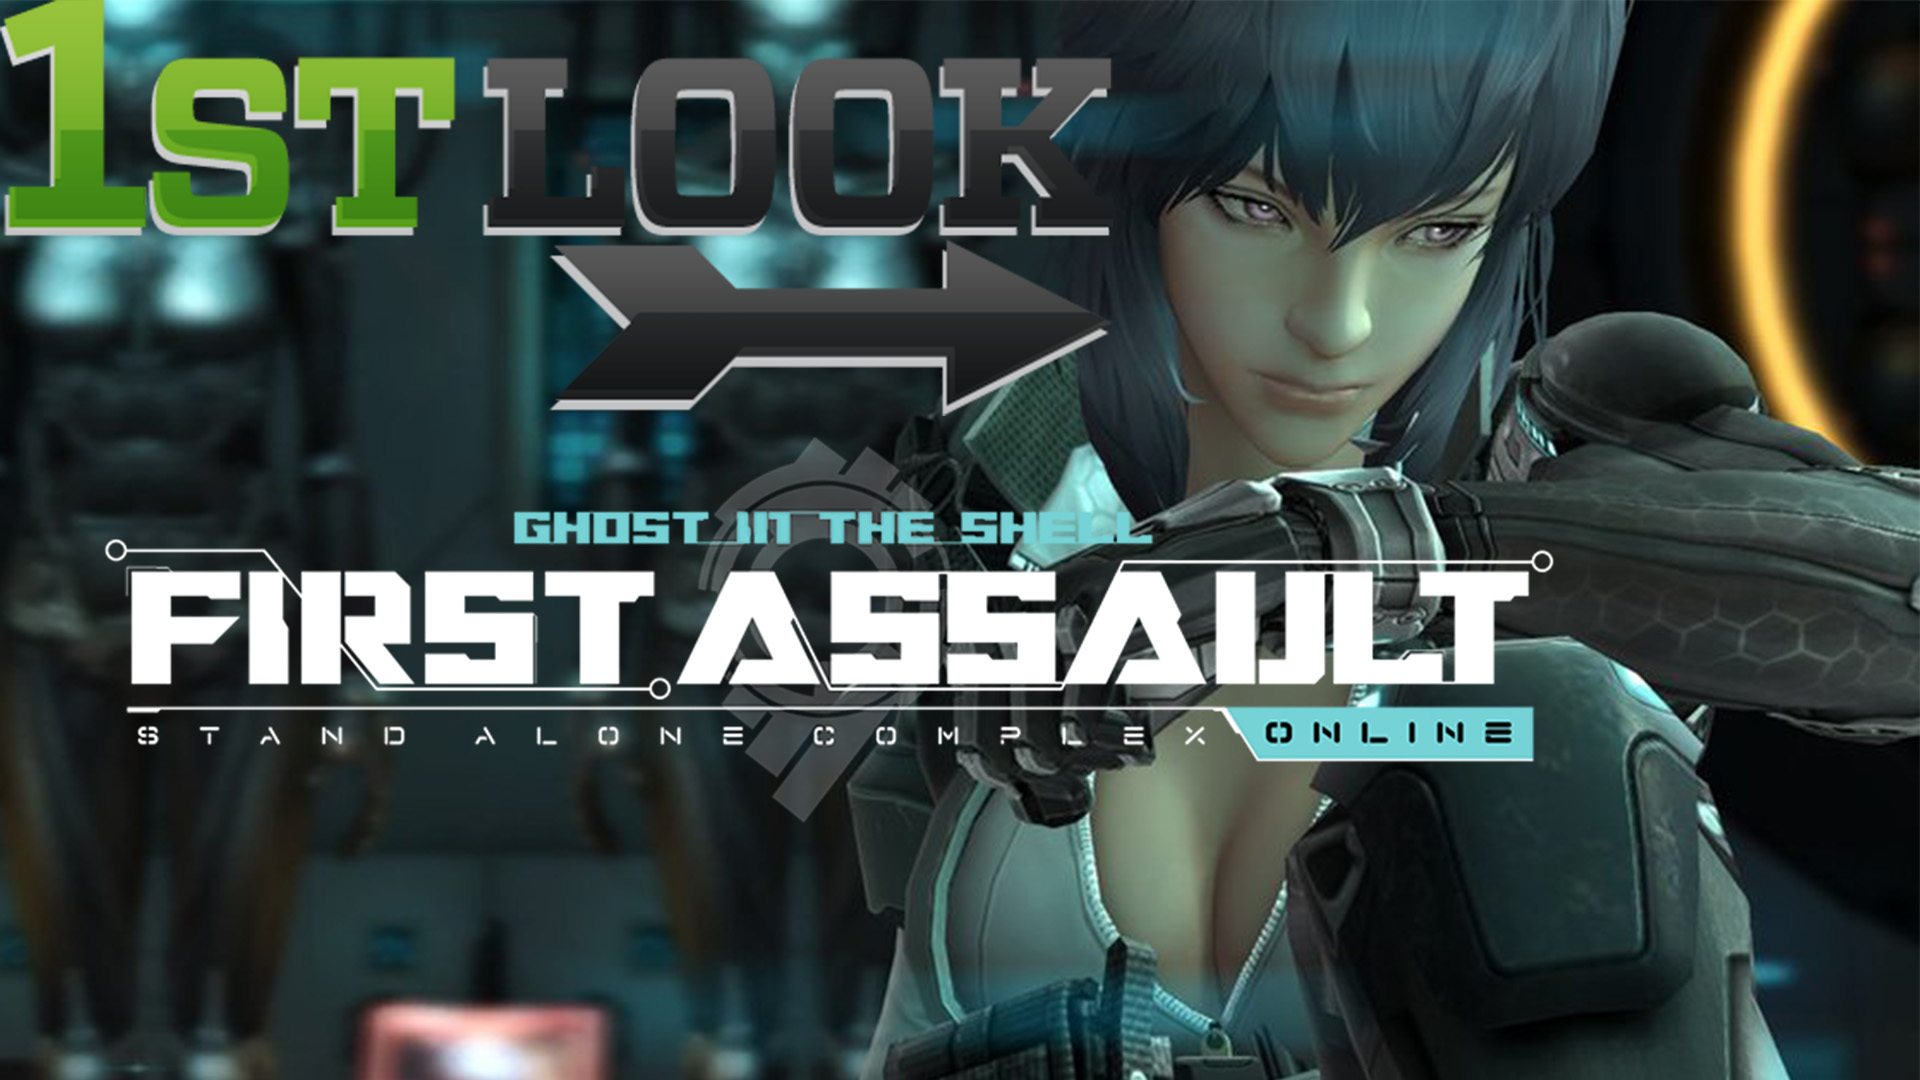 Ghost in the Shell: First Assault - First Look